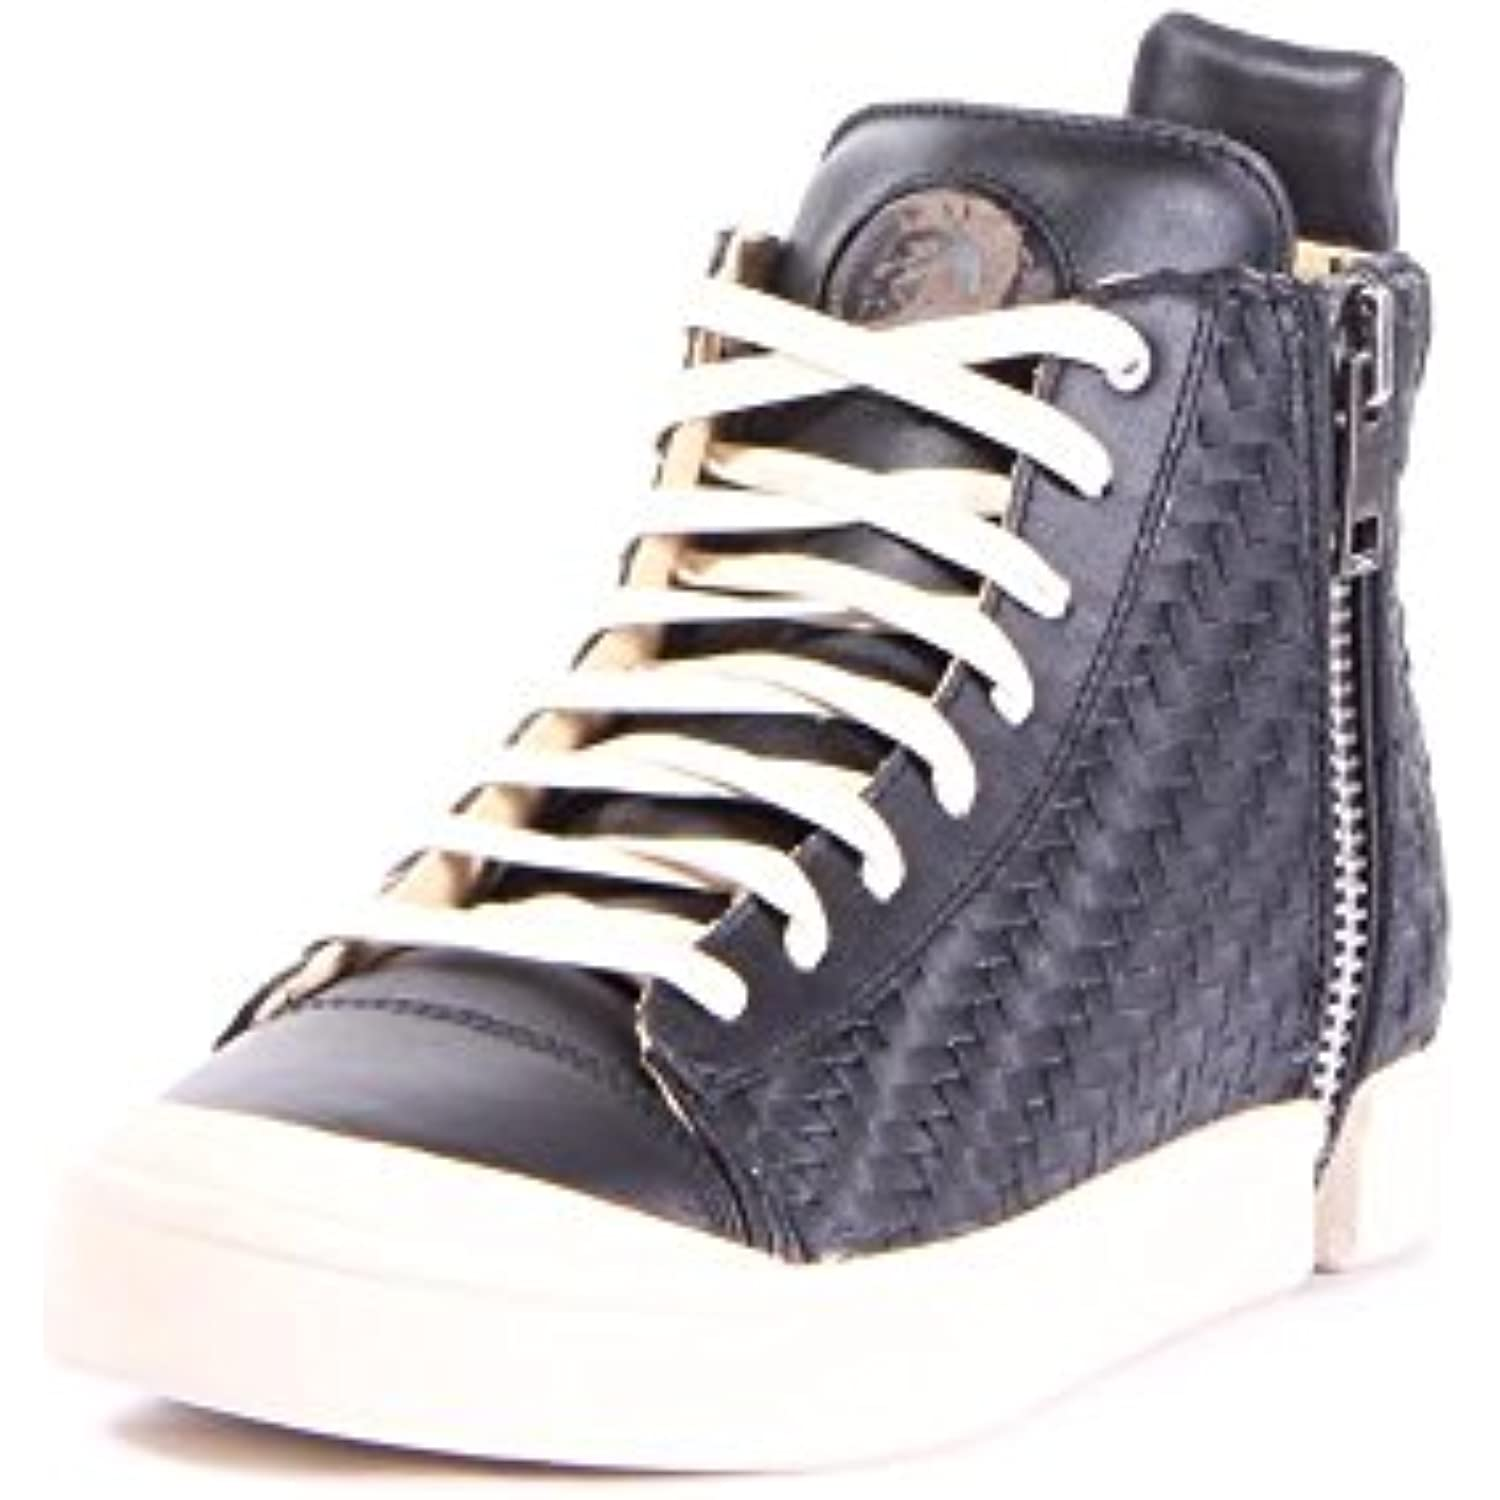 DIESEL S-Nentish - - Mode Hommes Chaussures - B01N6VH187 - - a3d4cb